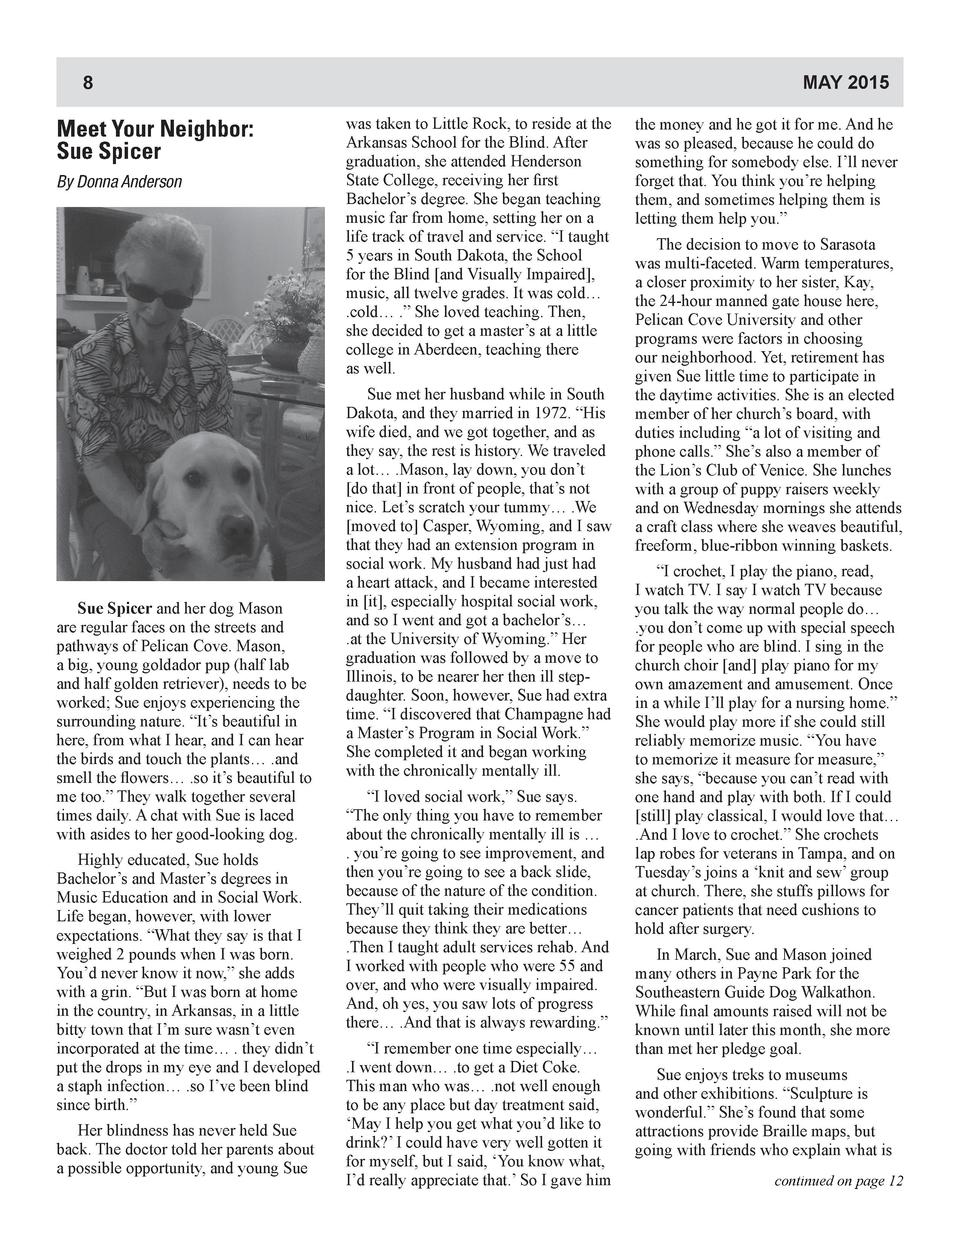 MAY 2015  8  Meet Your Neighbor  Sue Spicer By Donna Anderson  Sue Spicer and her dog Mason are regular faces on the stree...